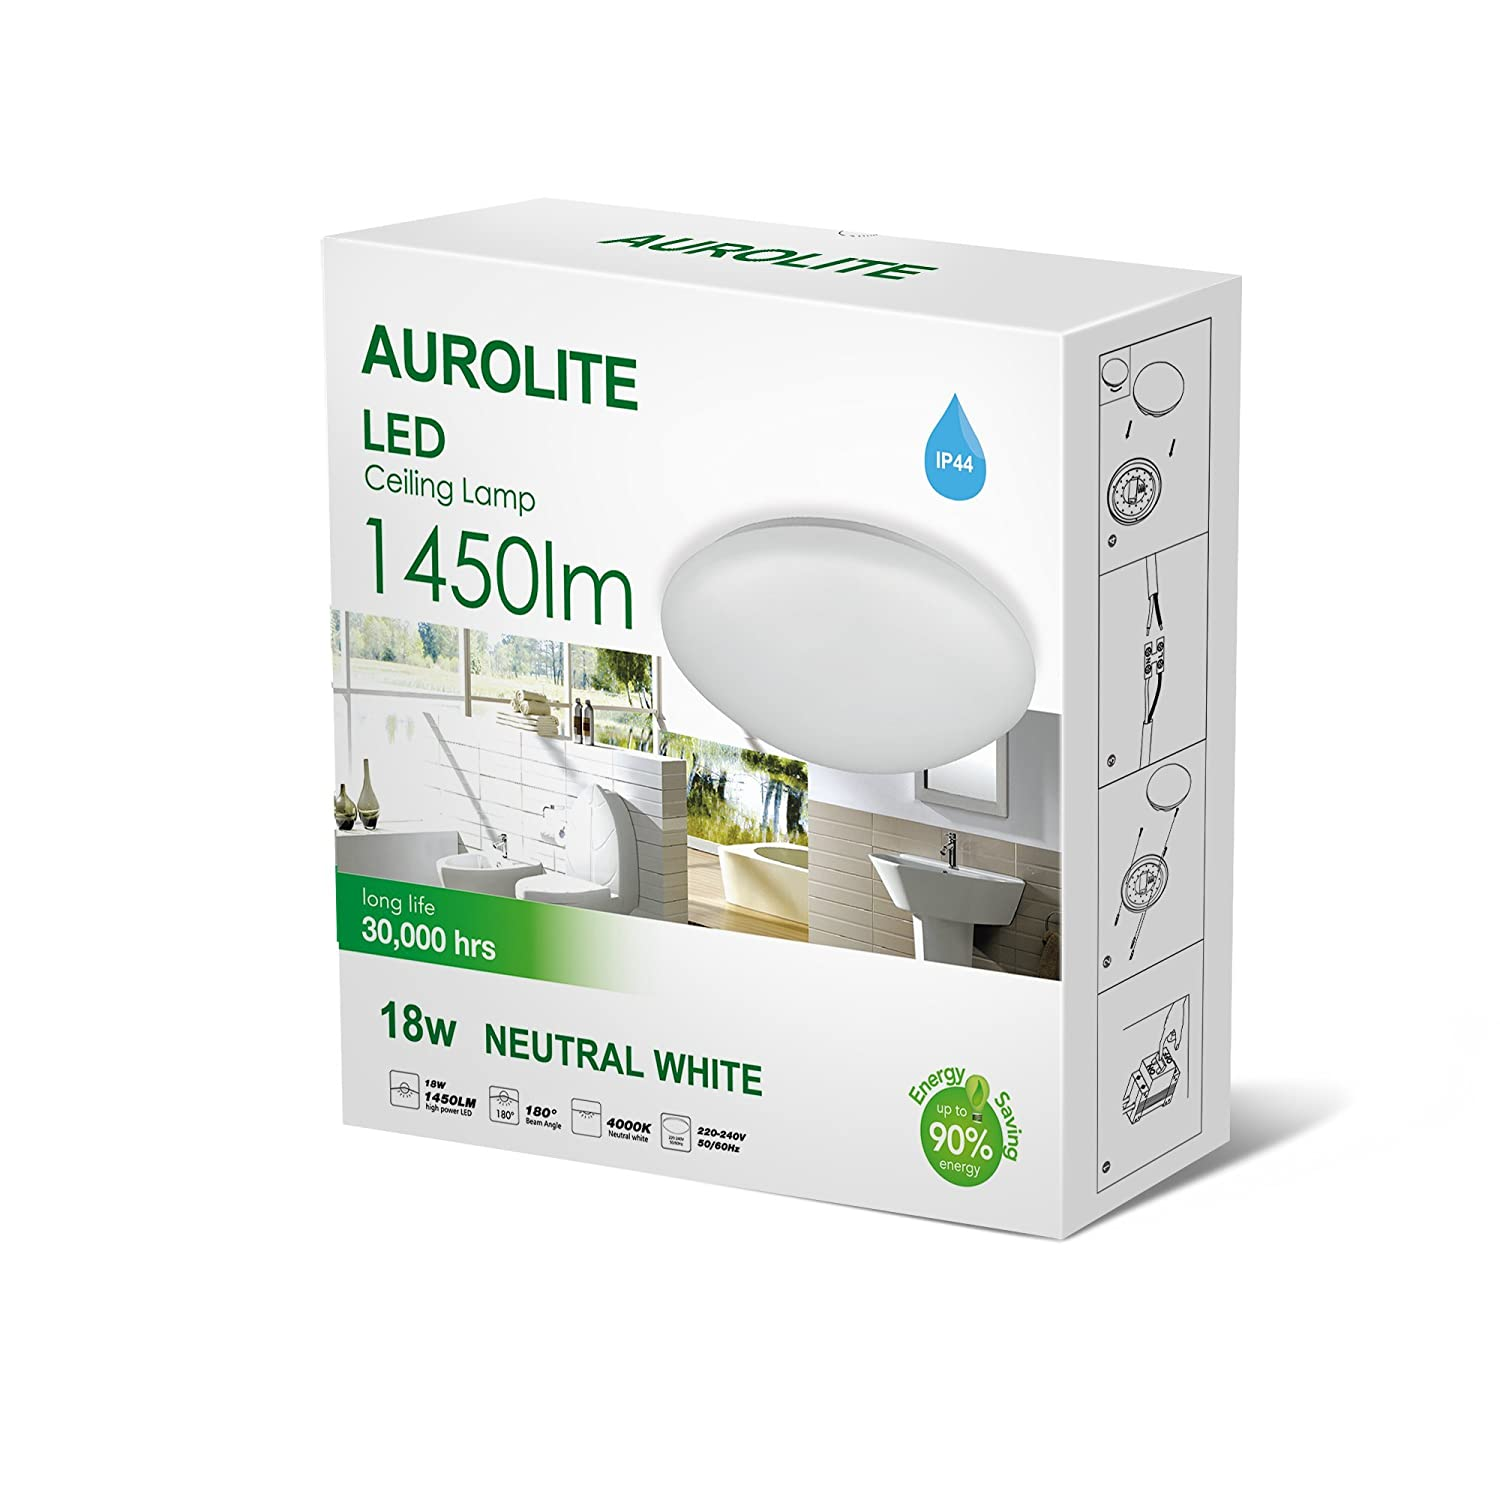 AUROLITE LED IP44, Ø 26cm, 1450LM, Bathroom, Kitchen, Hallway, Office, Flush, Bath Ceiling Light, High Quality, 1 Year Warranty-18W, 18W 4000K